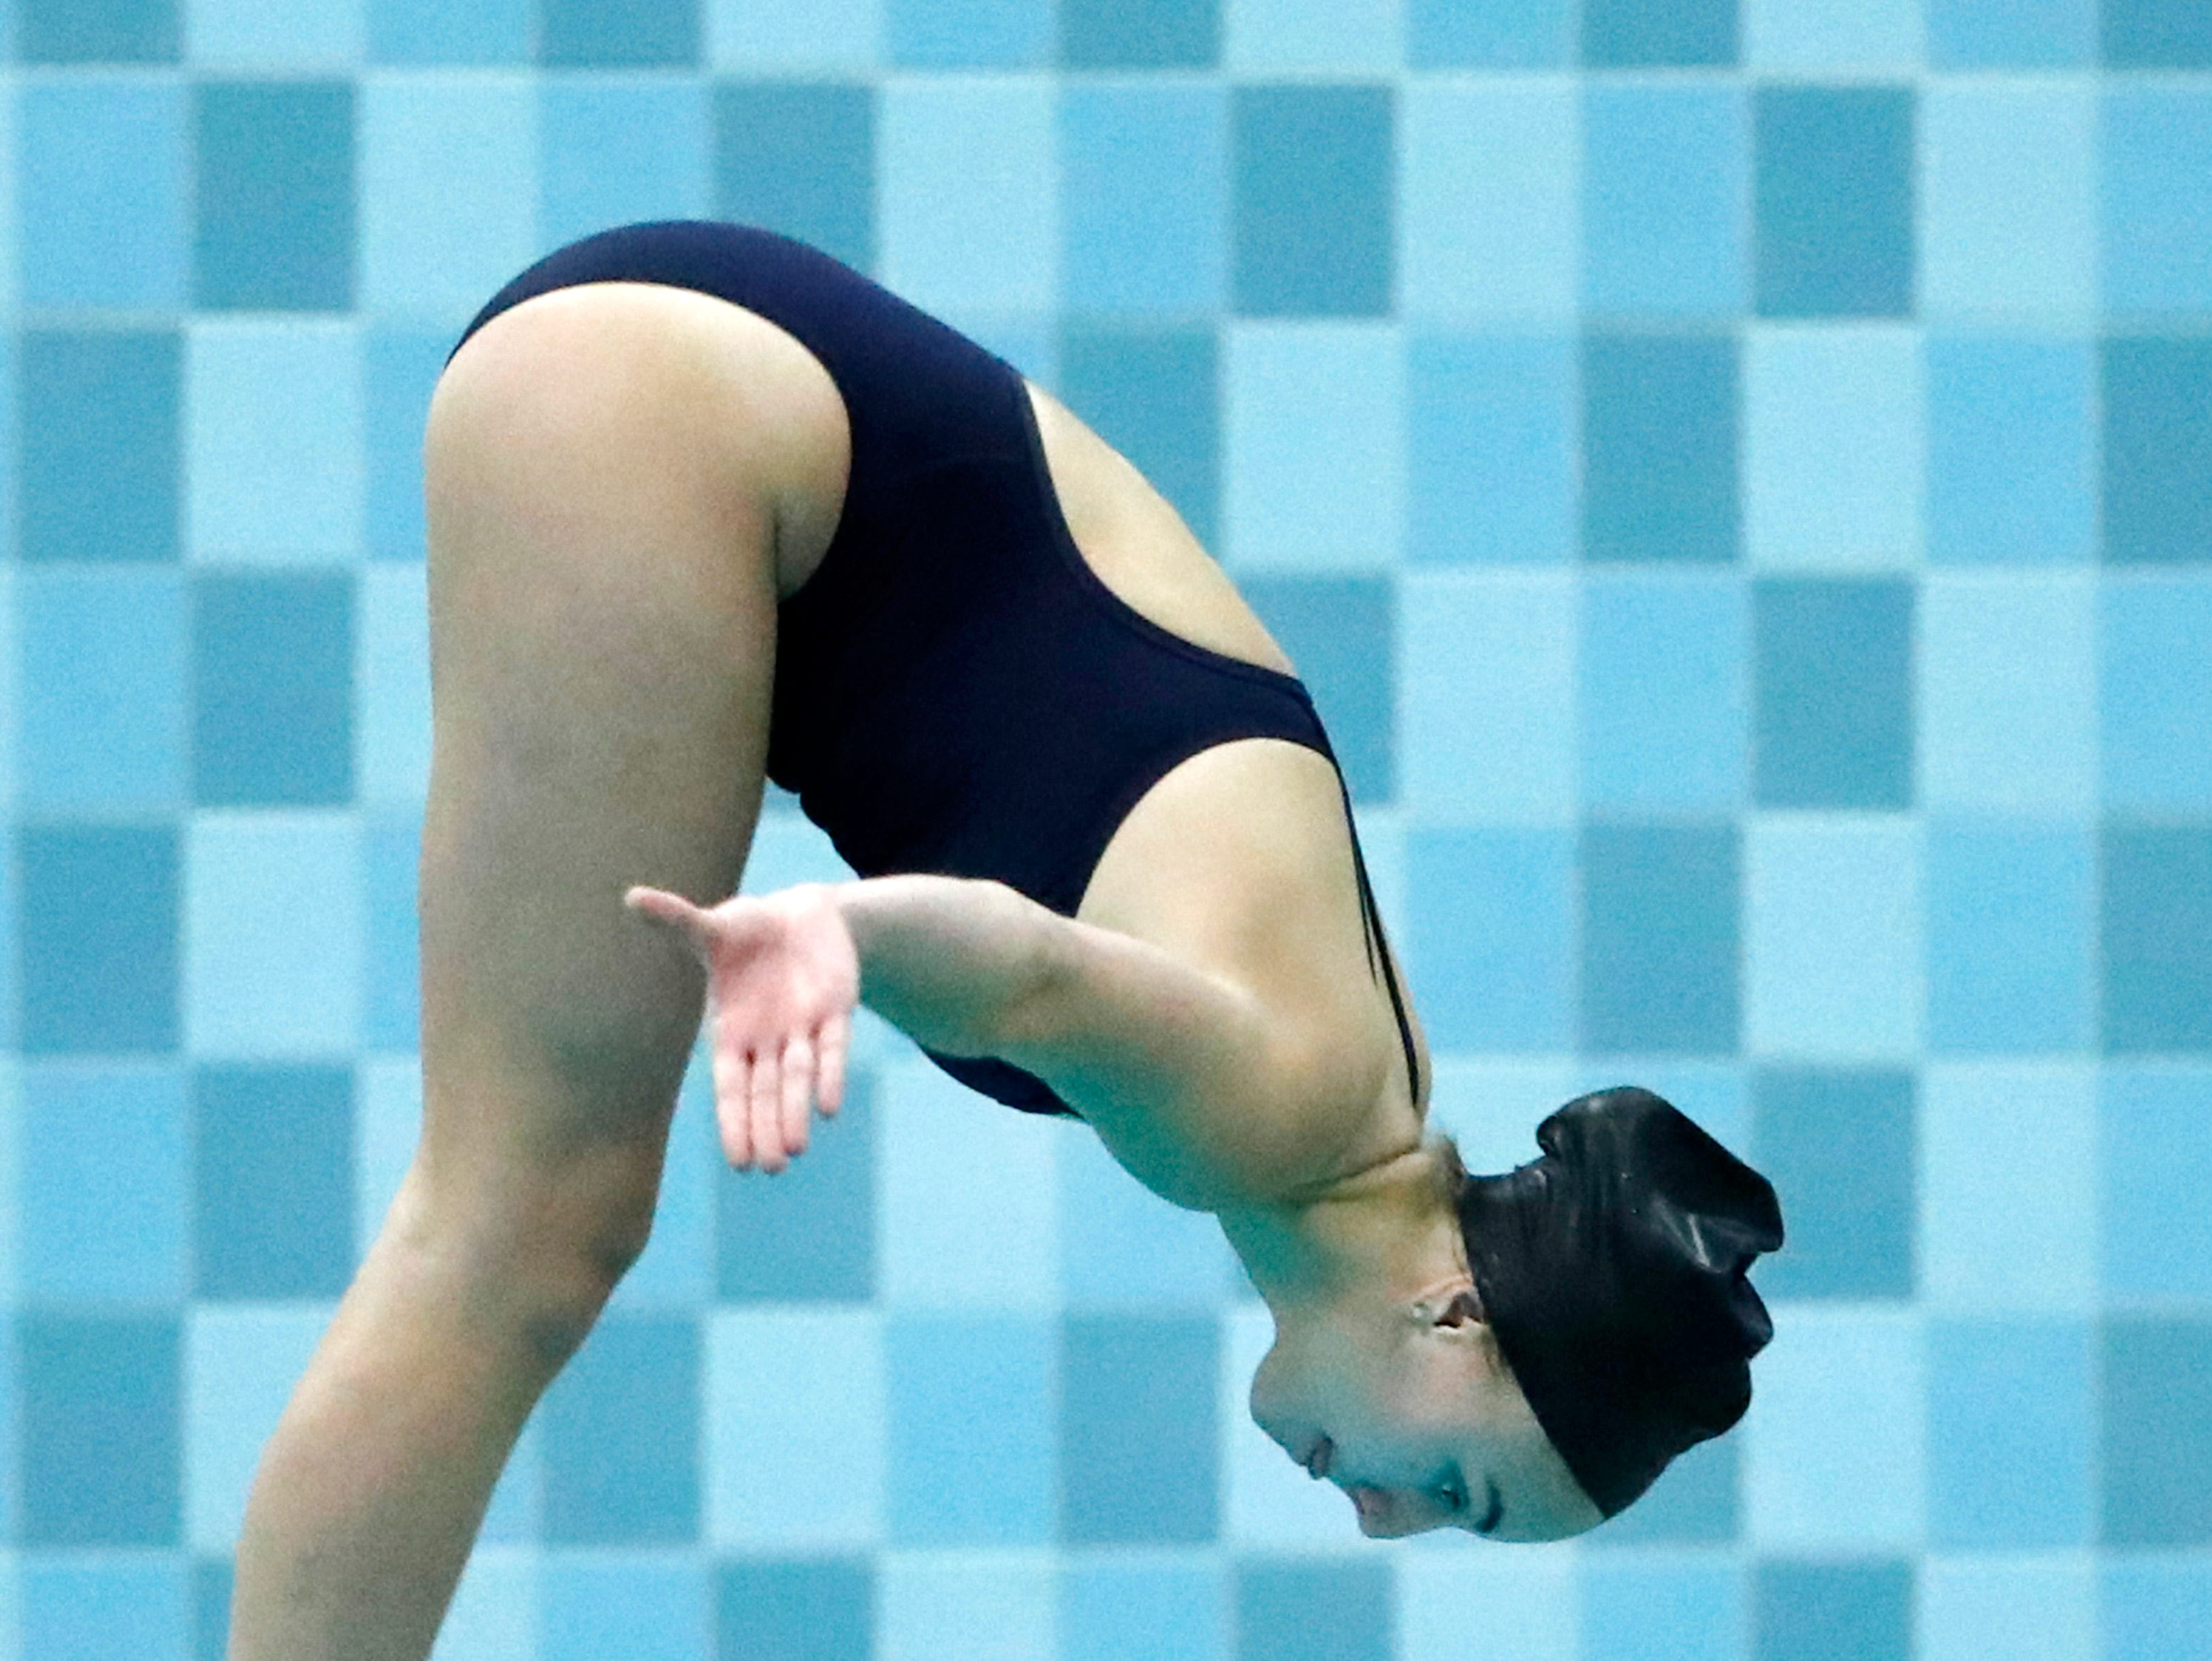 Appleton North's Abby Hopfensperger dives during the WIAA Division 1 State Swimming and Diving meet Saturday, Nov. 10, 2018, at the UW Natatorium in Madison, Wis.